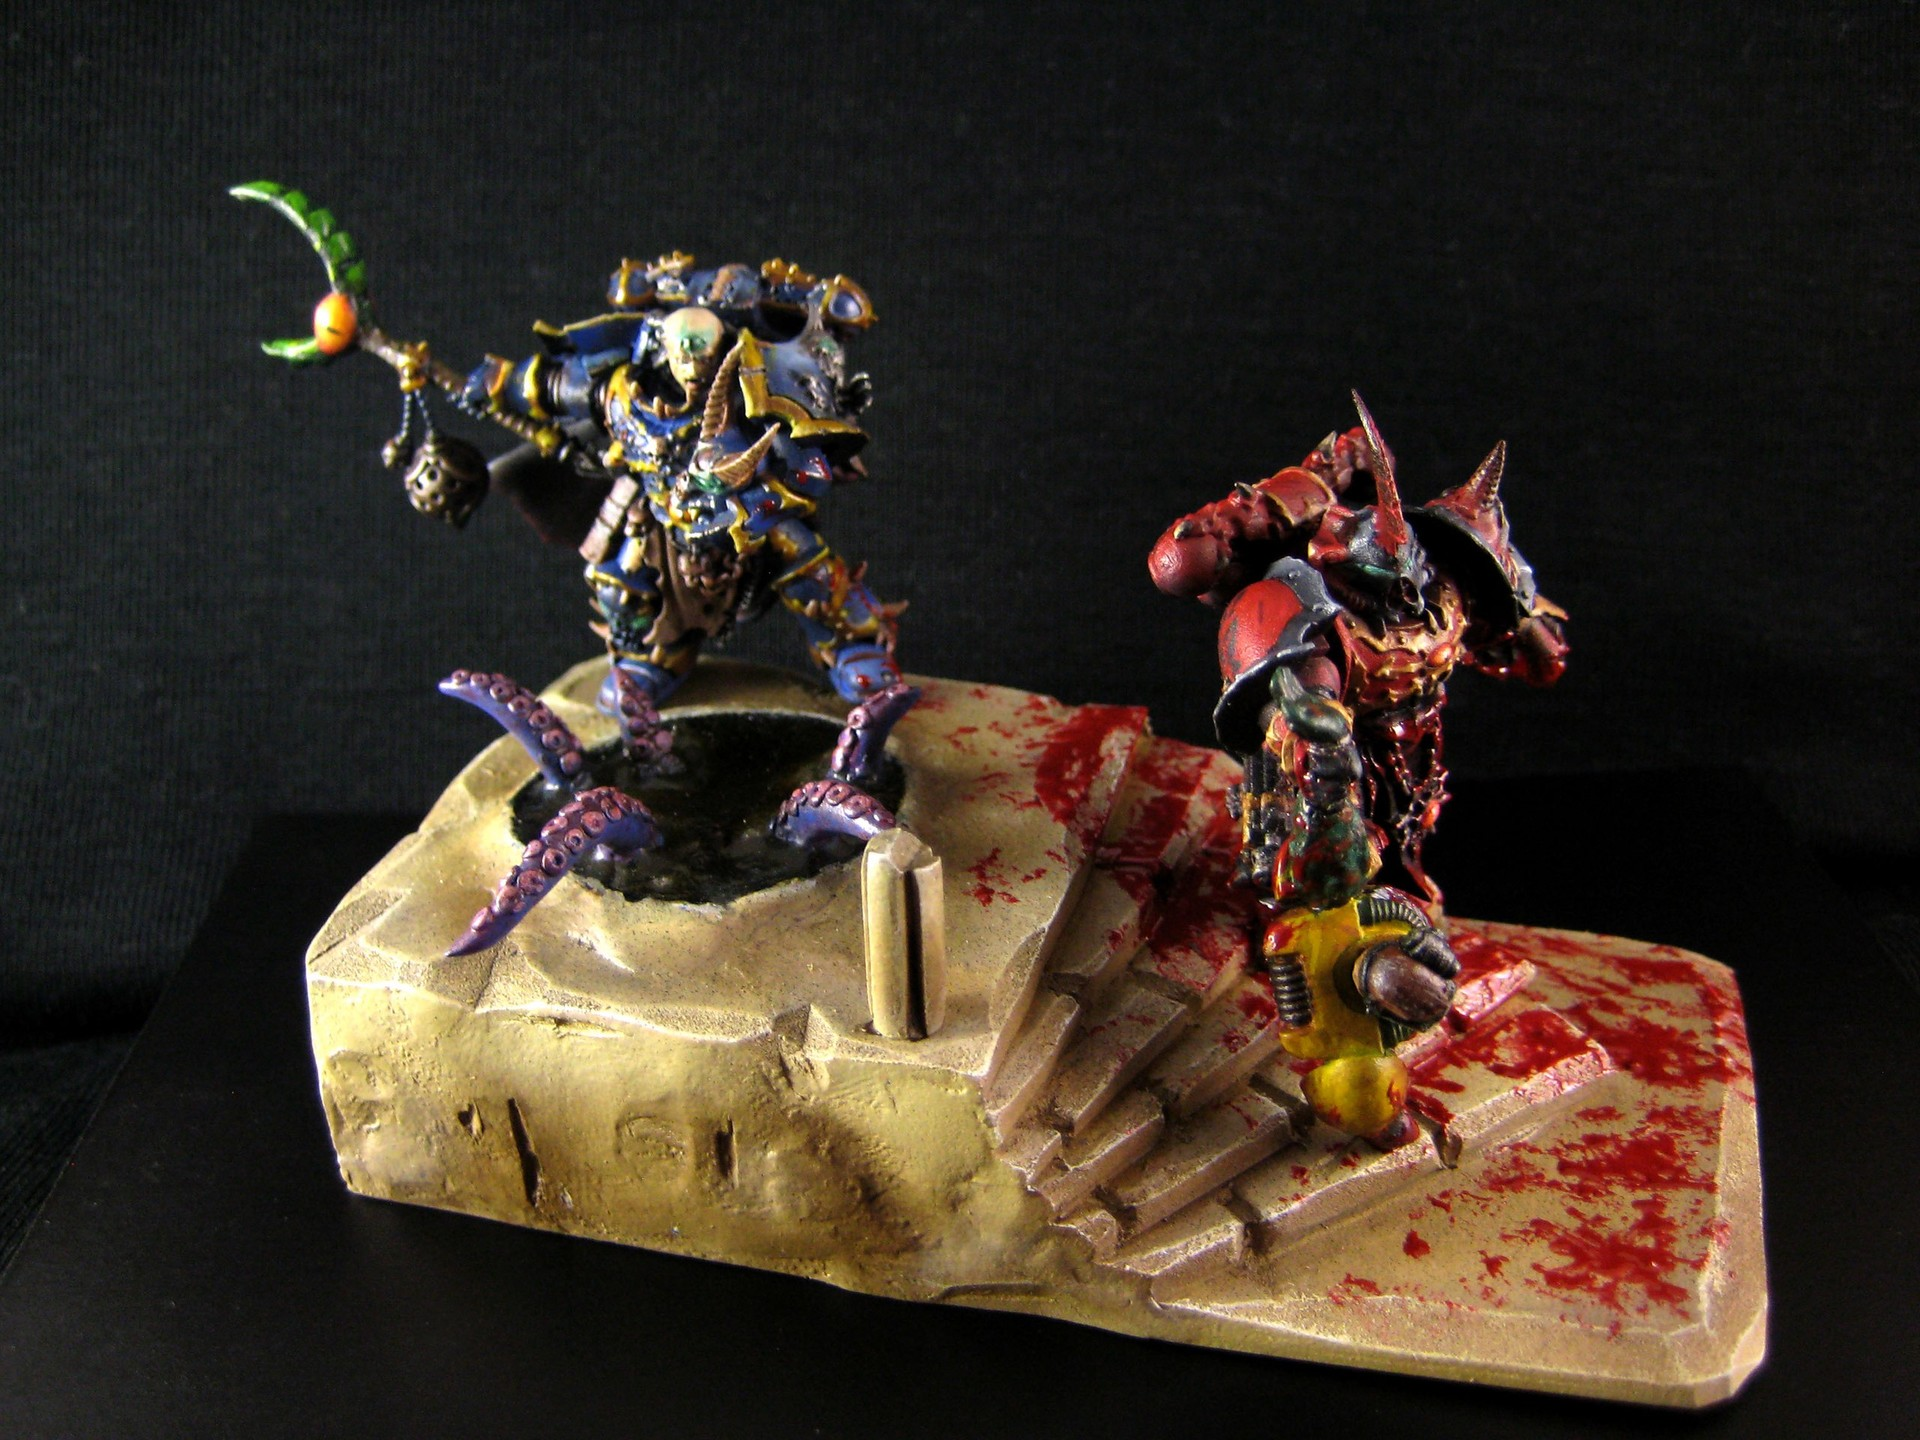 ArtStation - Death is not the end  Diorama, Cyb Lord